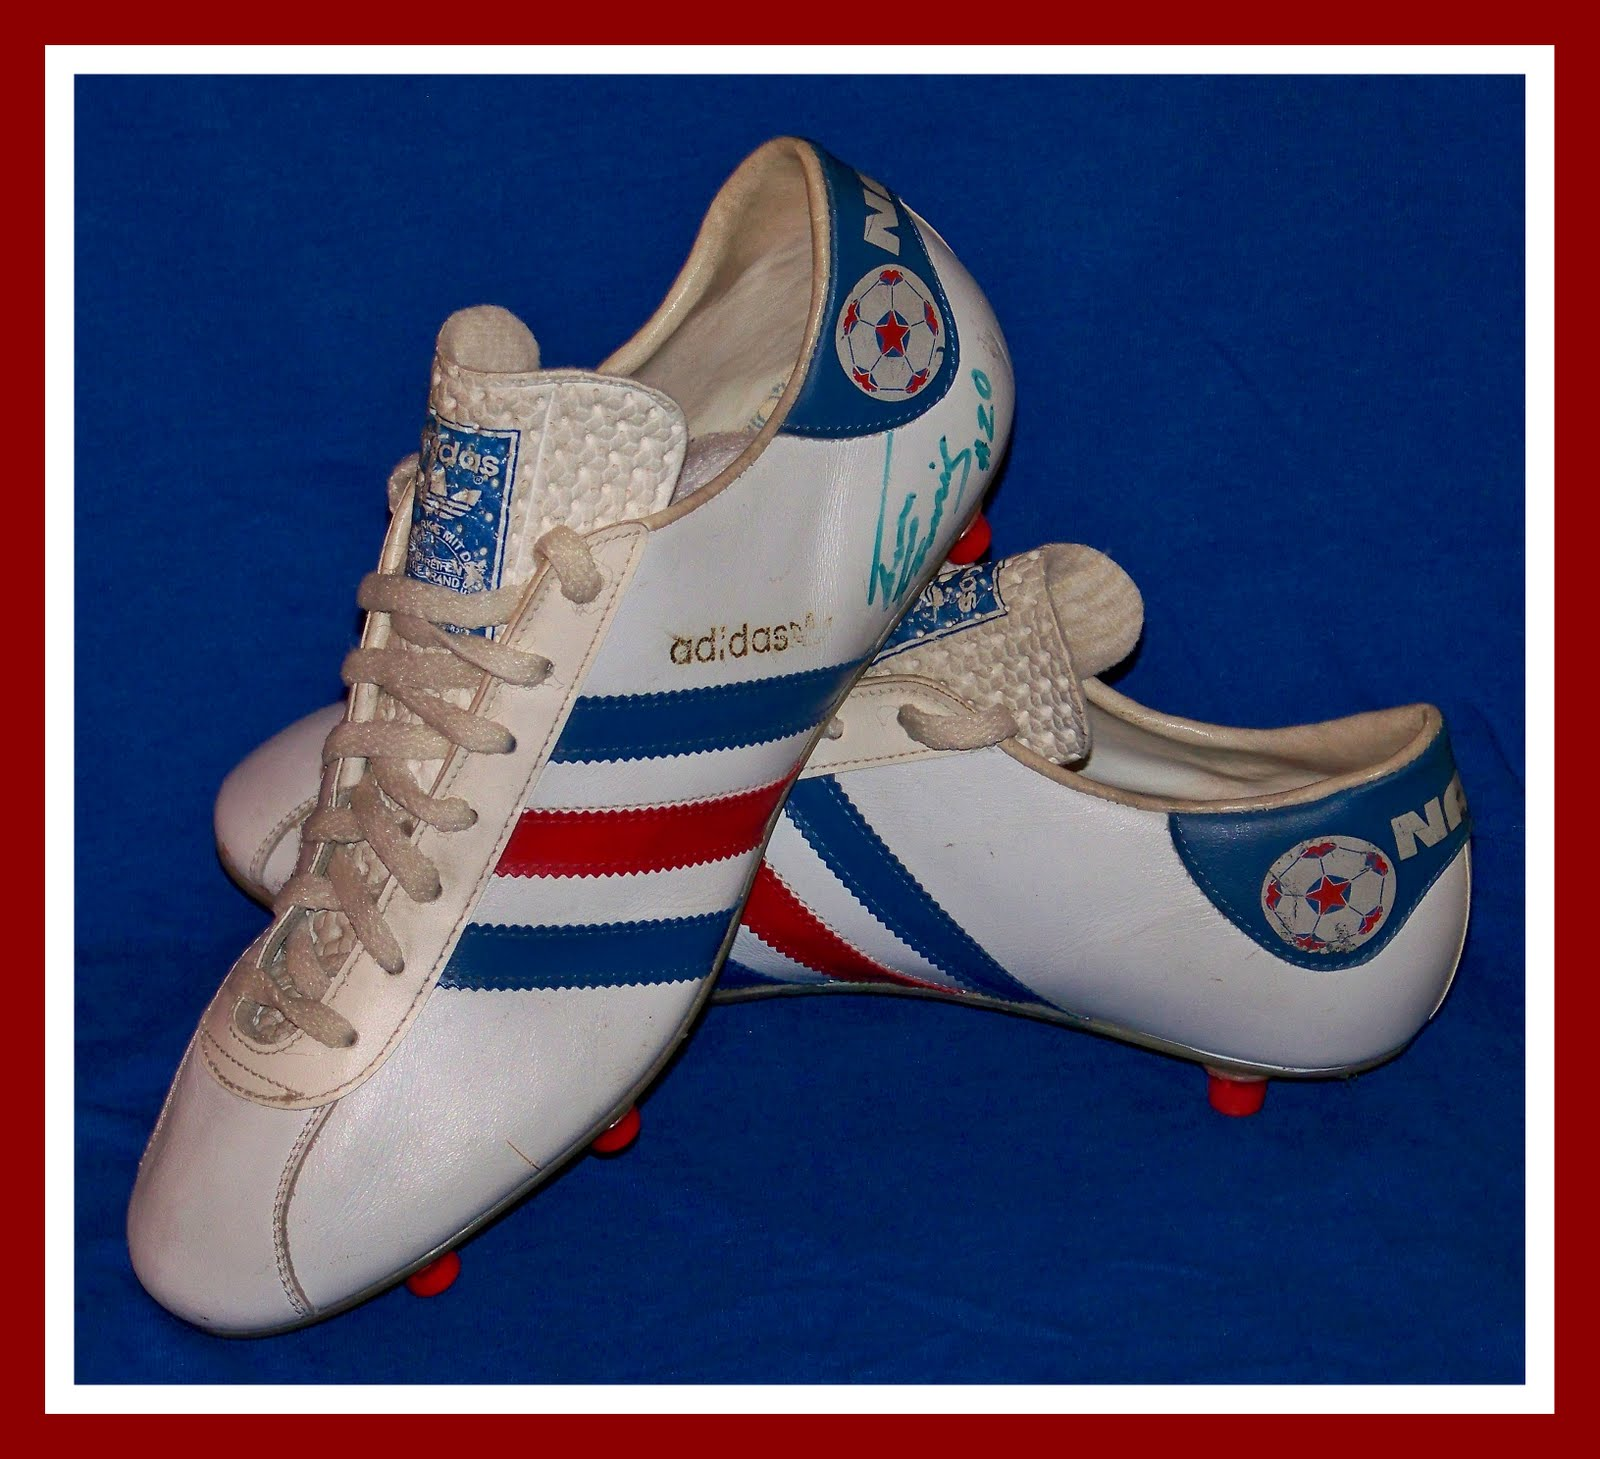 ADIDAS NASL CLEATS AUTOGRAPHED BY TREVOR FRANCIS